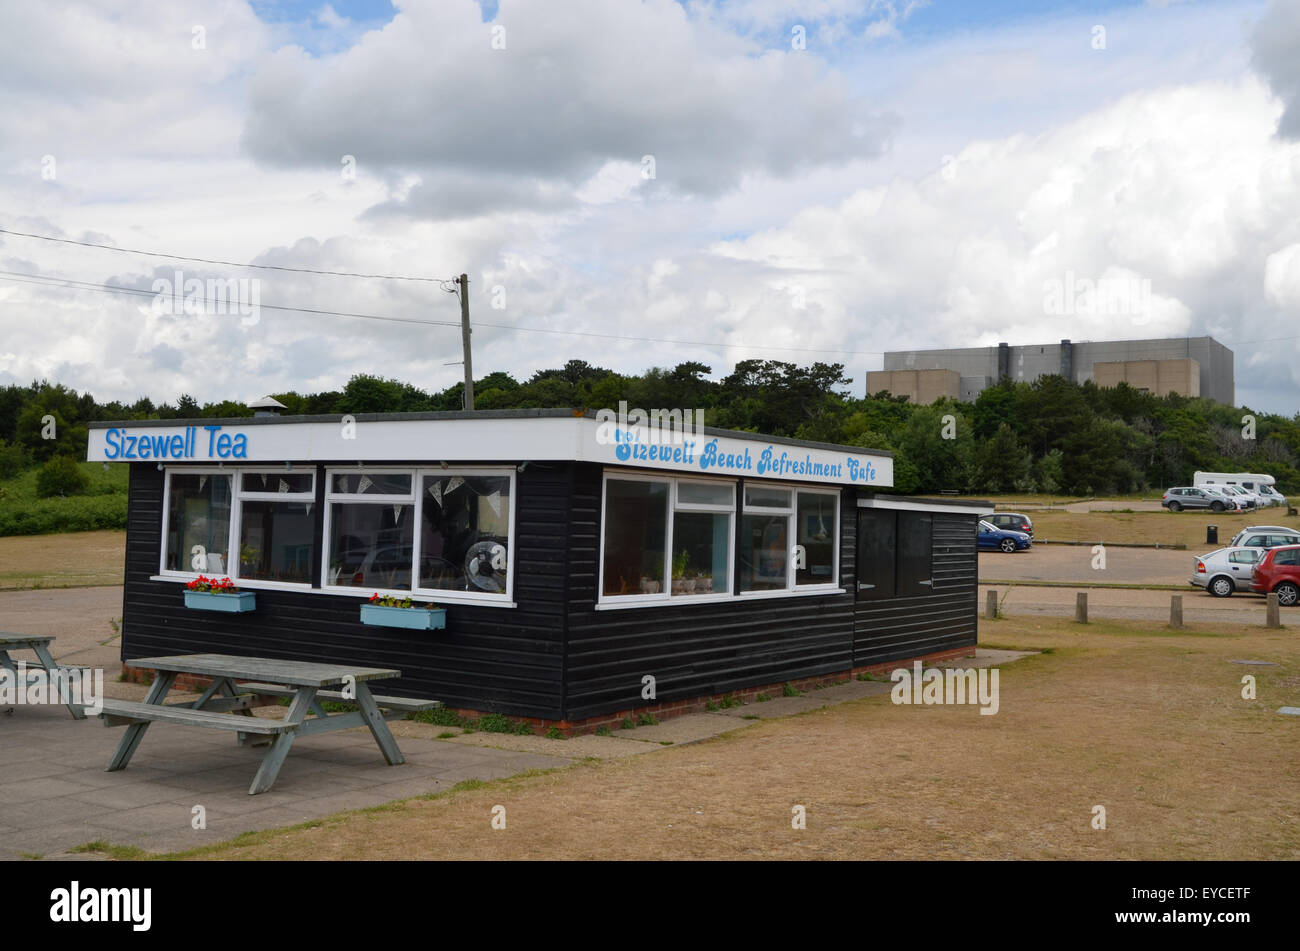 Beach cafe next to Sizewell nuclear power plant, Suffolk 2015 Stock Photo